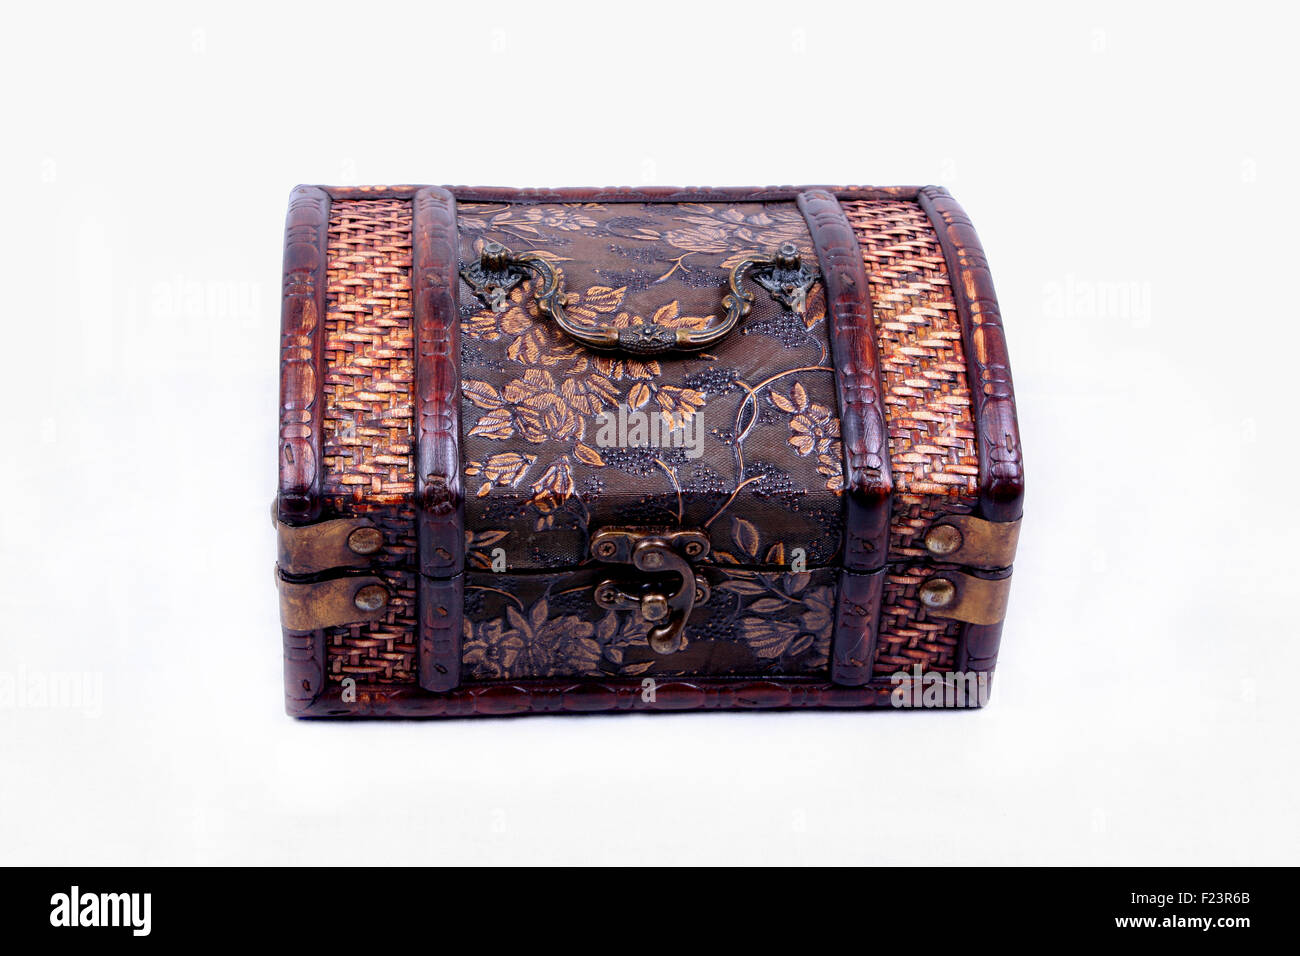 An ancient wooden box with beautiful carvings used for storing jewelery, isolated on a white background. - Stock Image